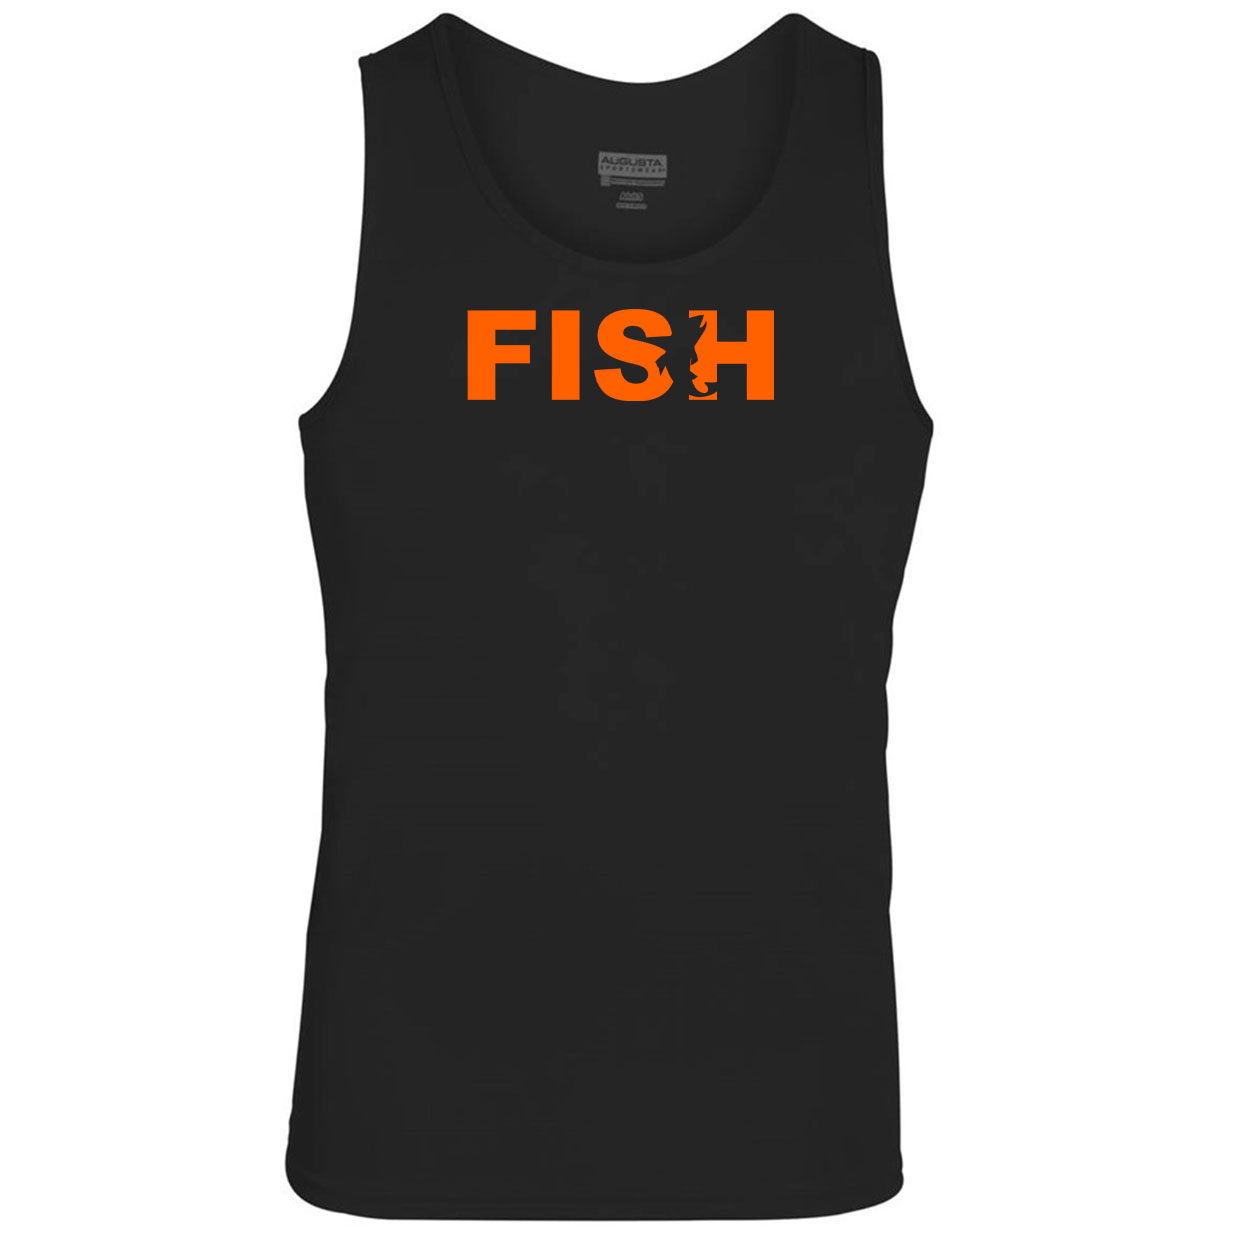 Fish Catch Logo Classic Youth Unisex Performance Tank Top Black (Orange Logo)